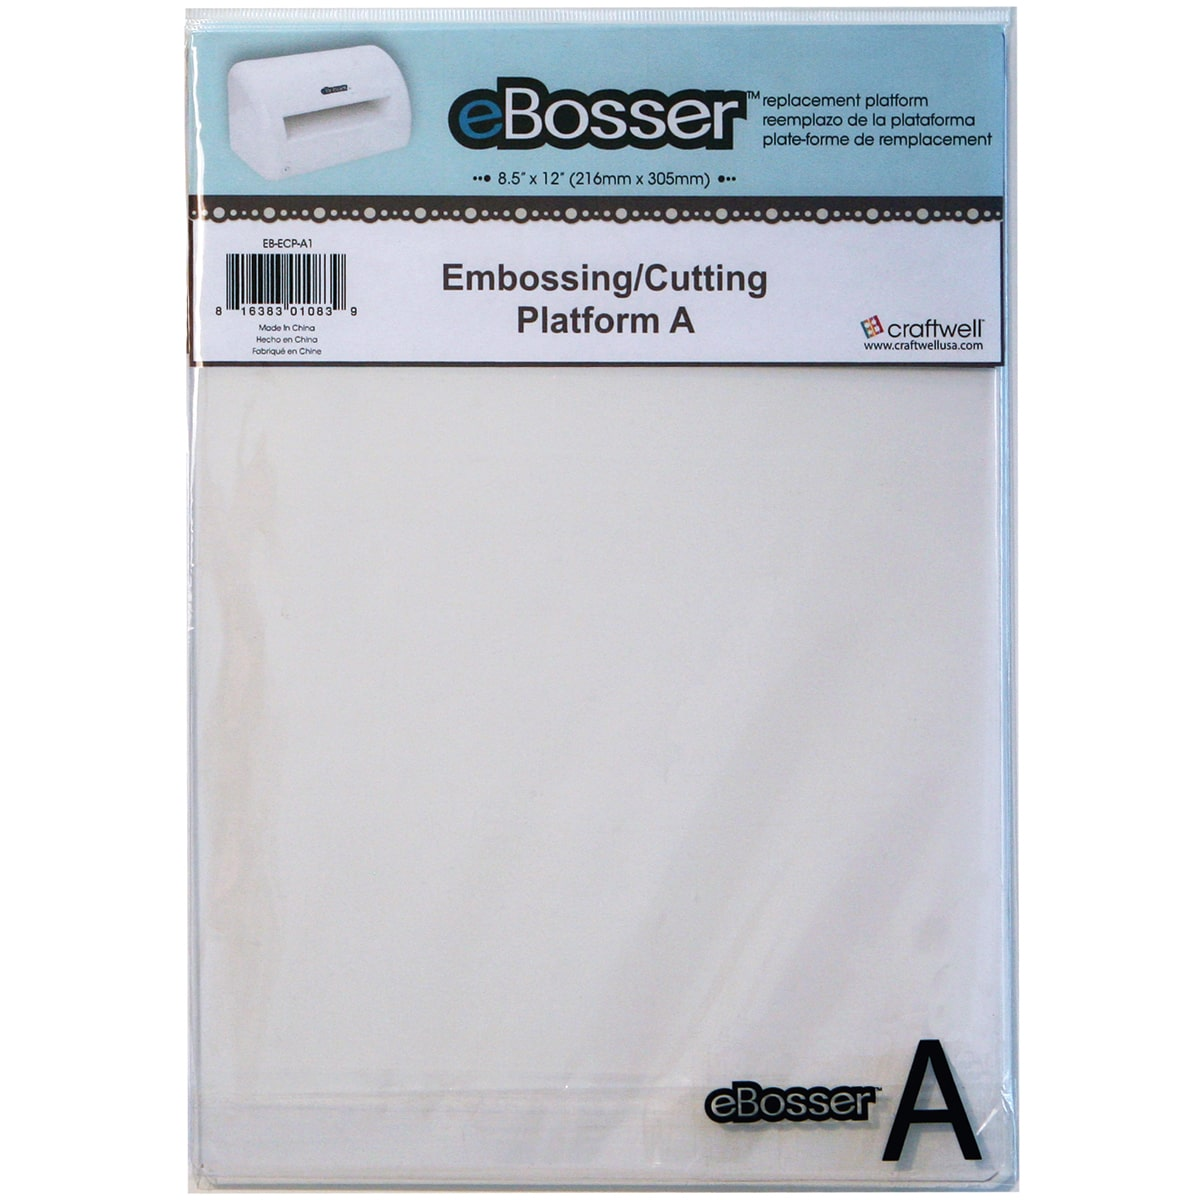 Craftwell eBosser Embossing & Cutting Platform A-